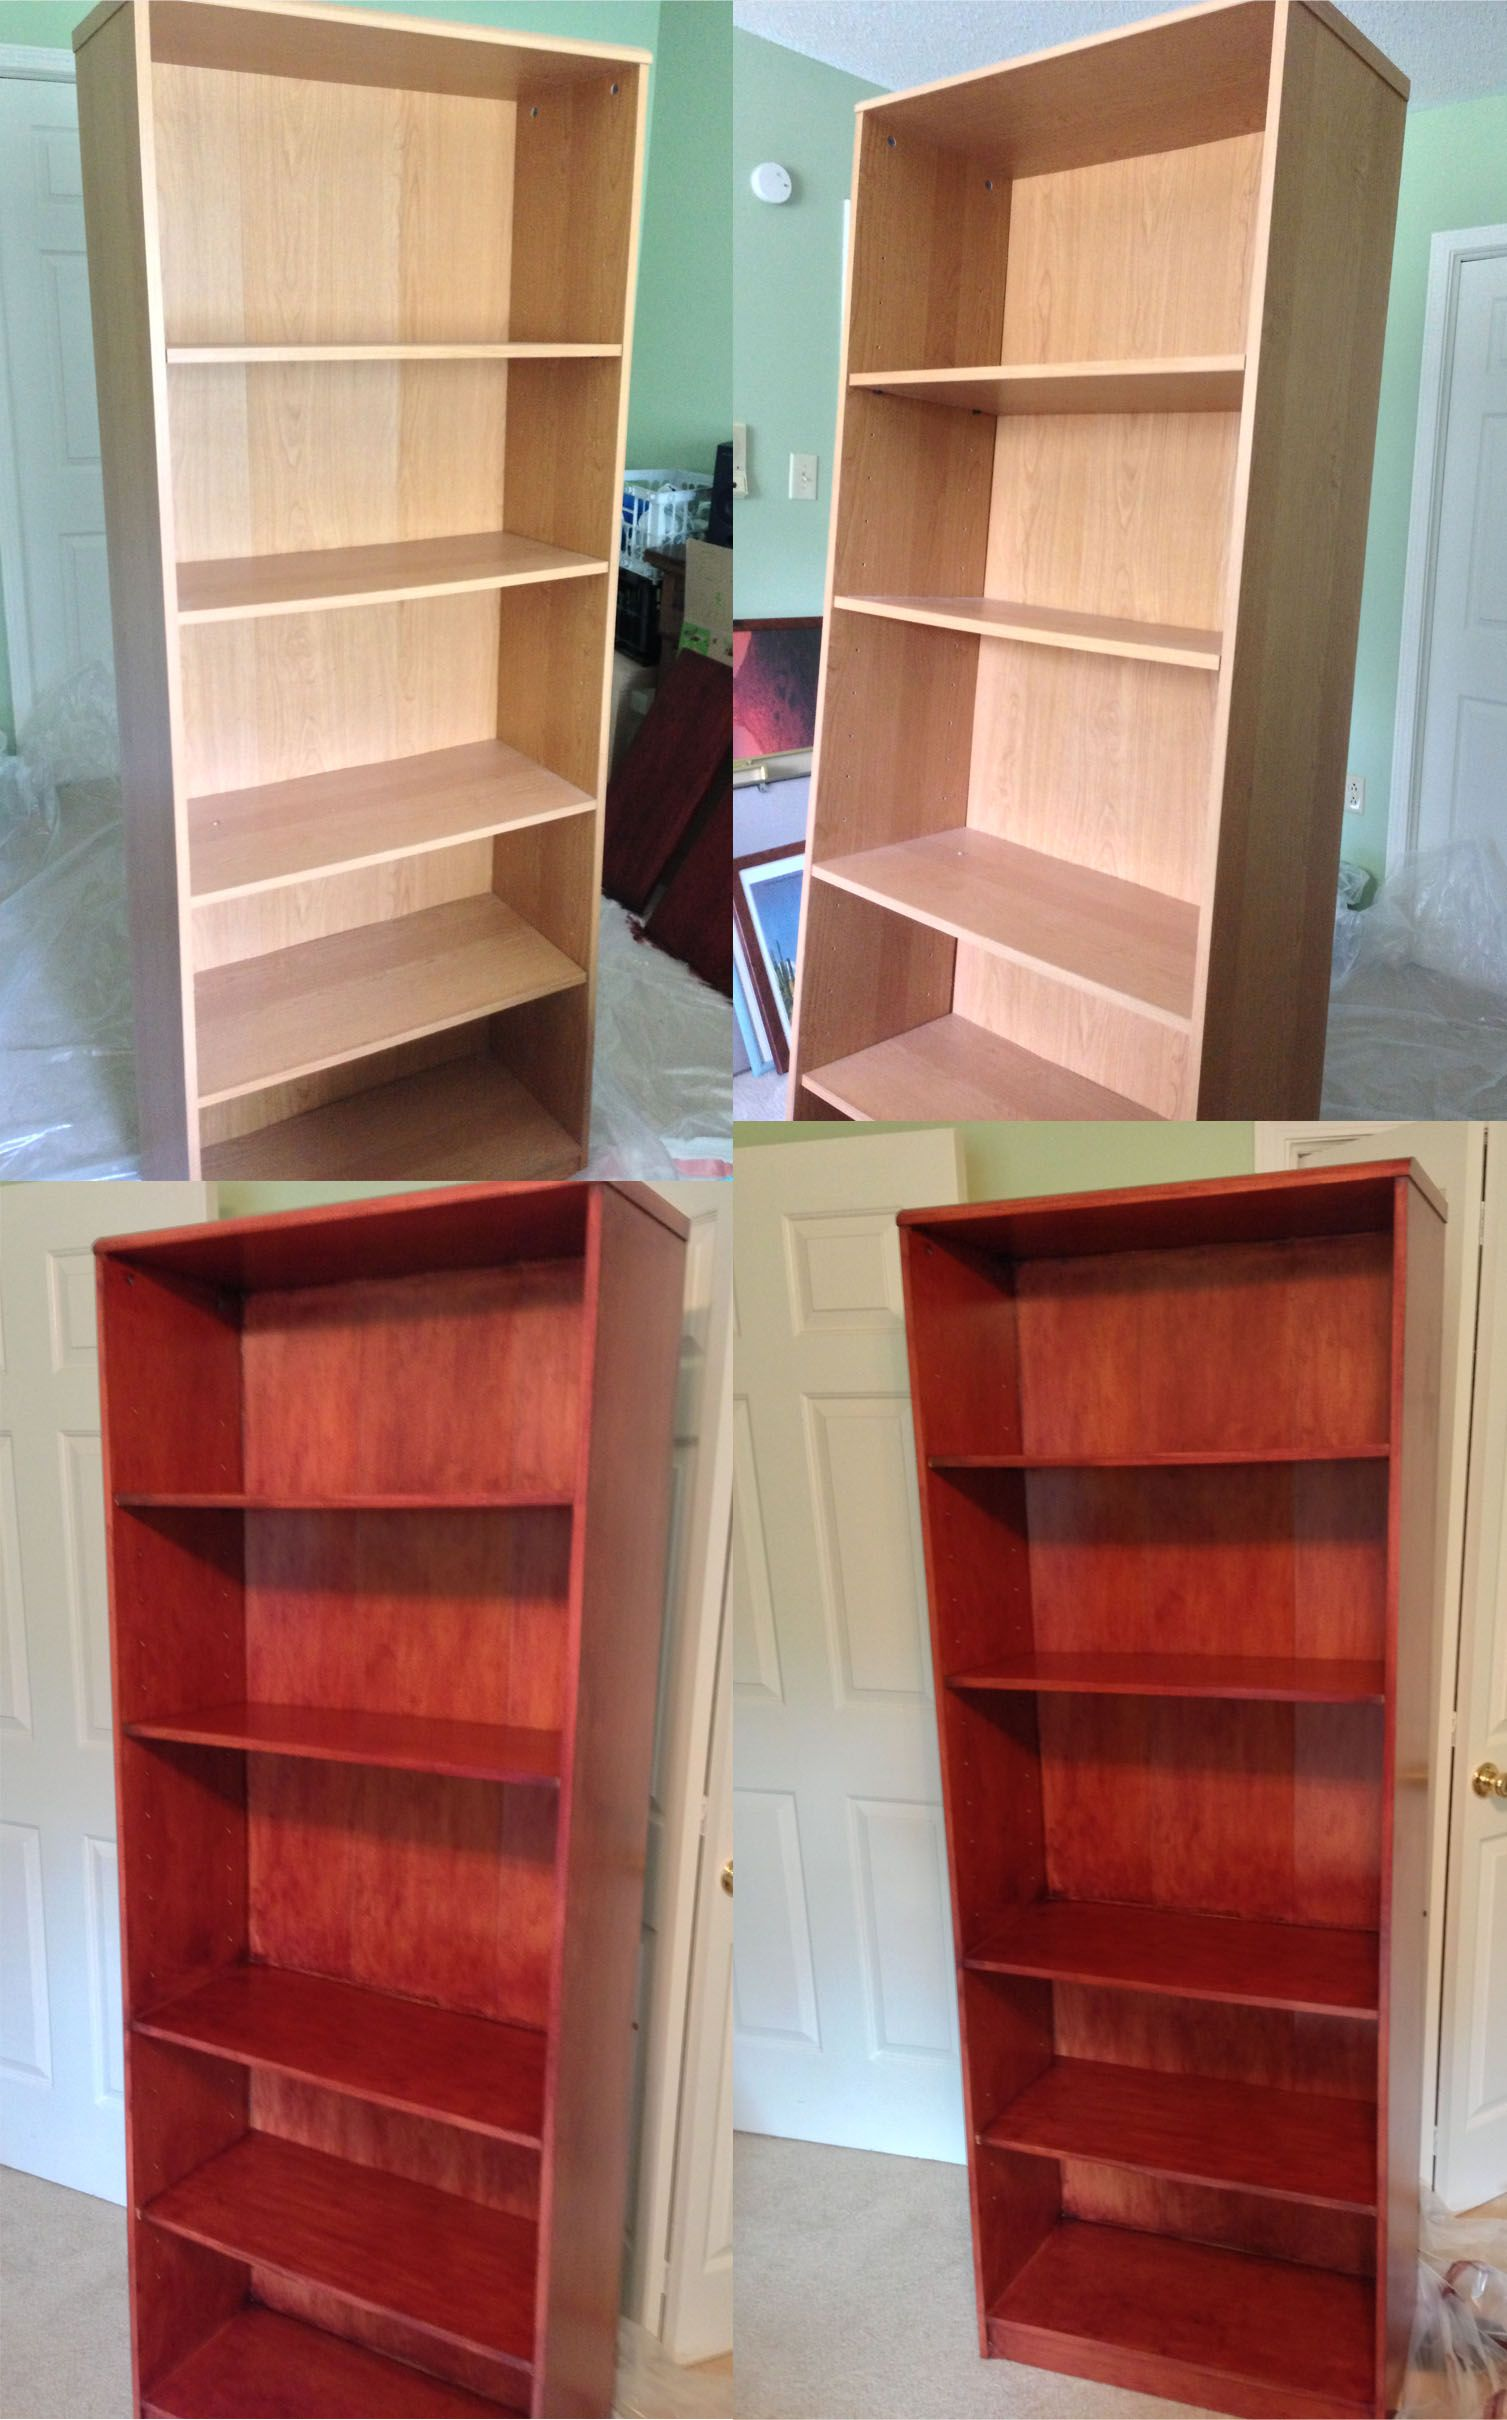 Re Do Of Old Wal Mart Pressed Wood Bookcases I Used General Finishes Georgian Cherry Gel Stain They Look So Much Nicer